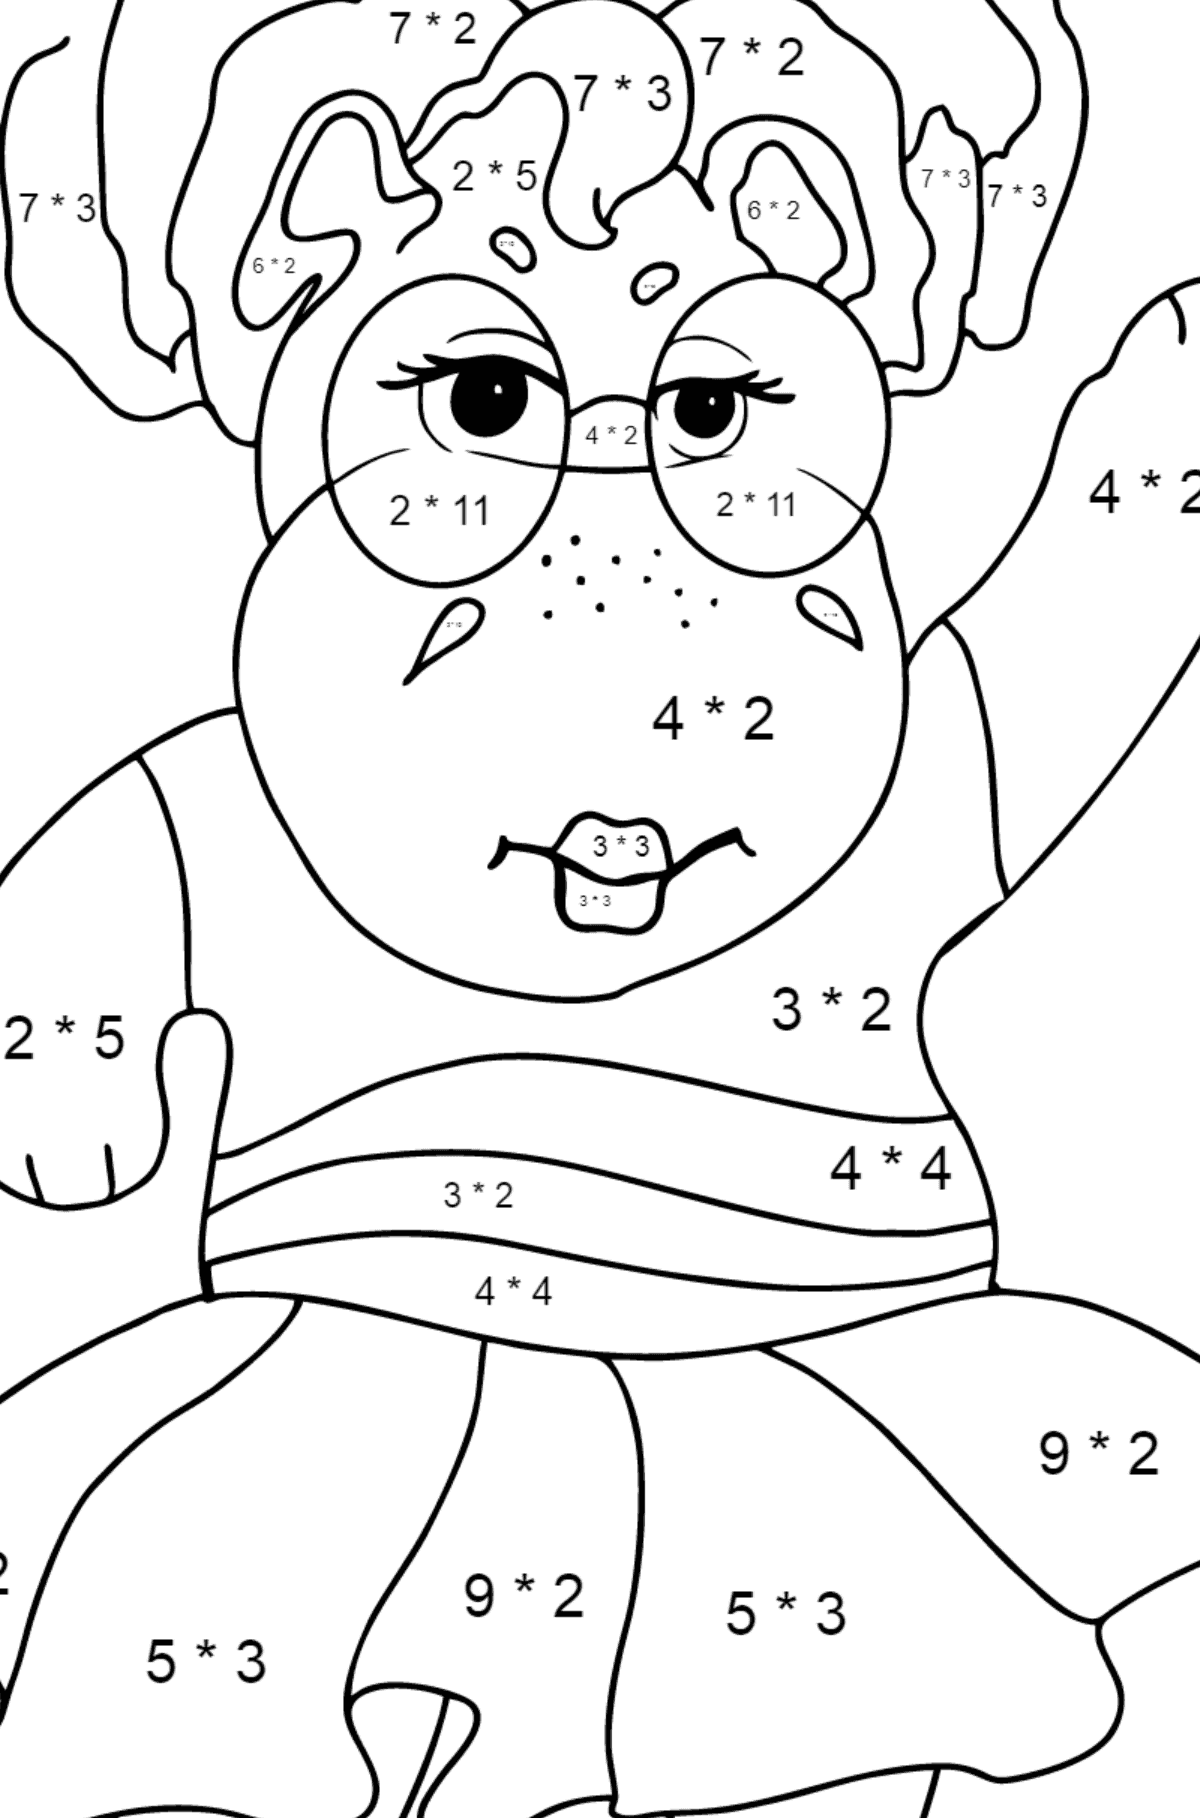 Coloring Page - A Hippo in Sunglasses for Children  - Color by Number Multiplication